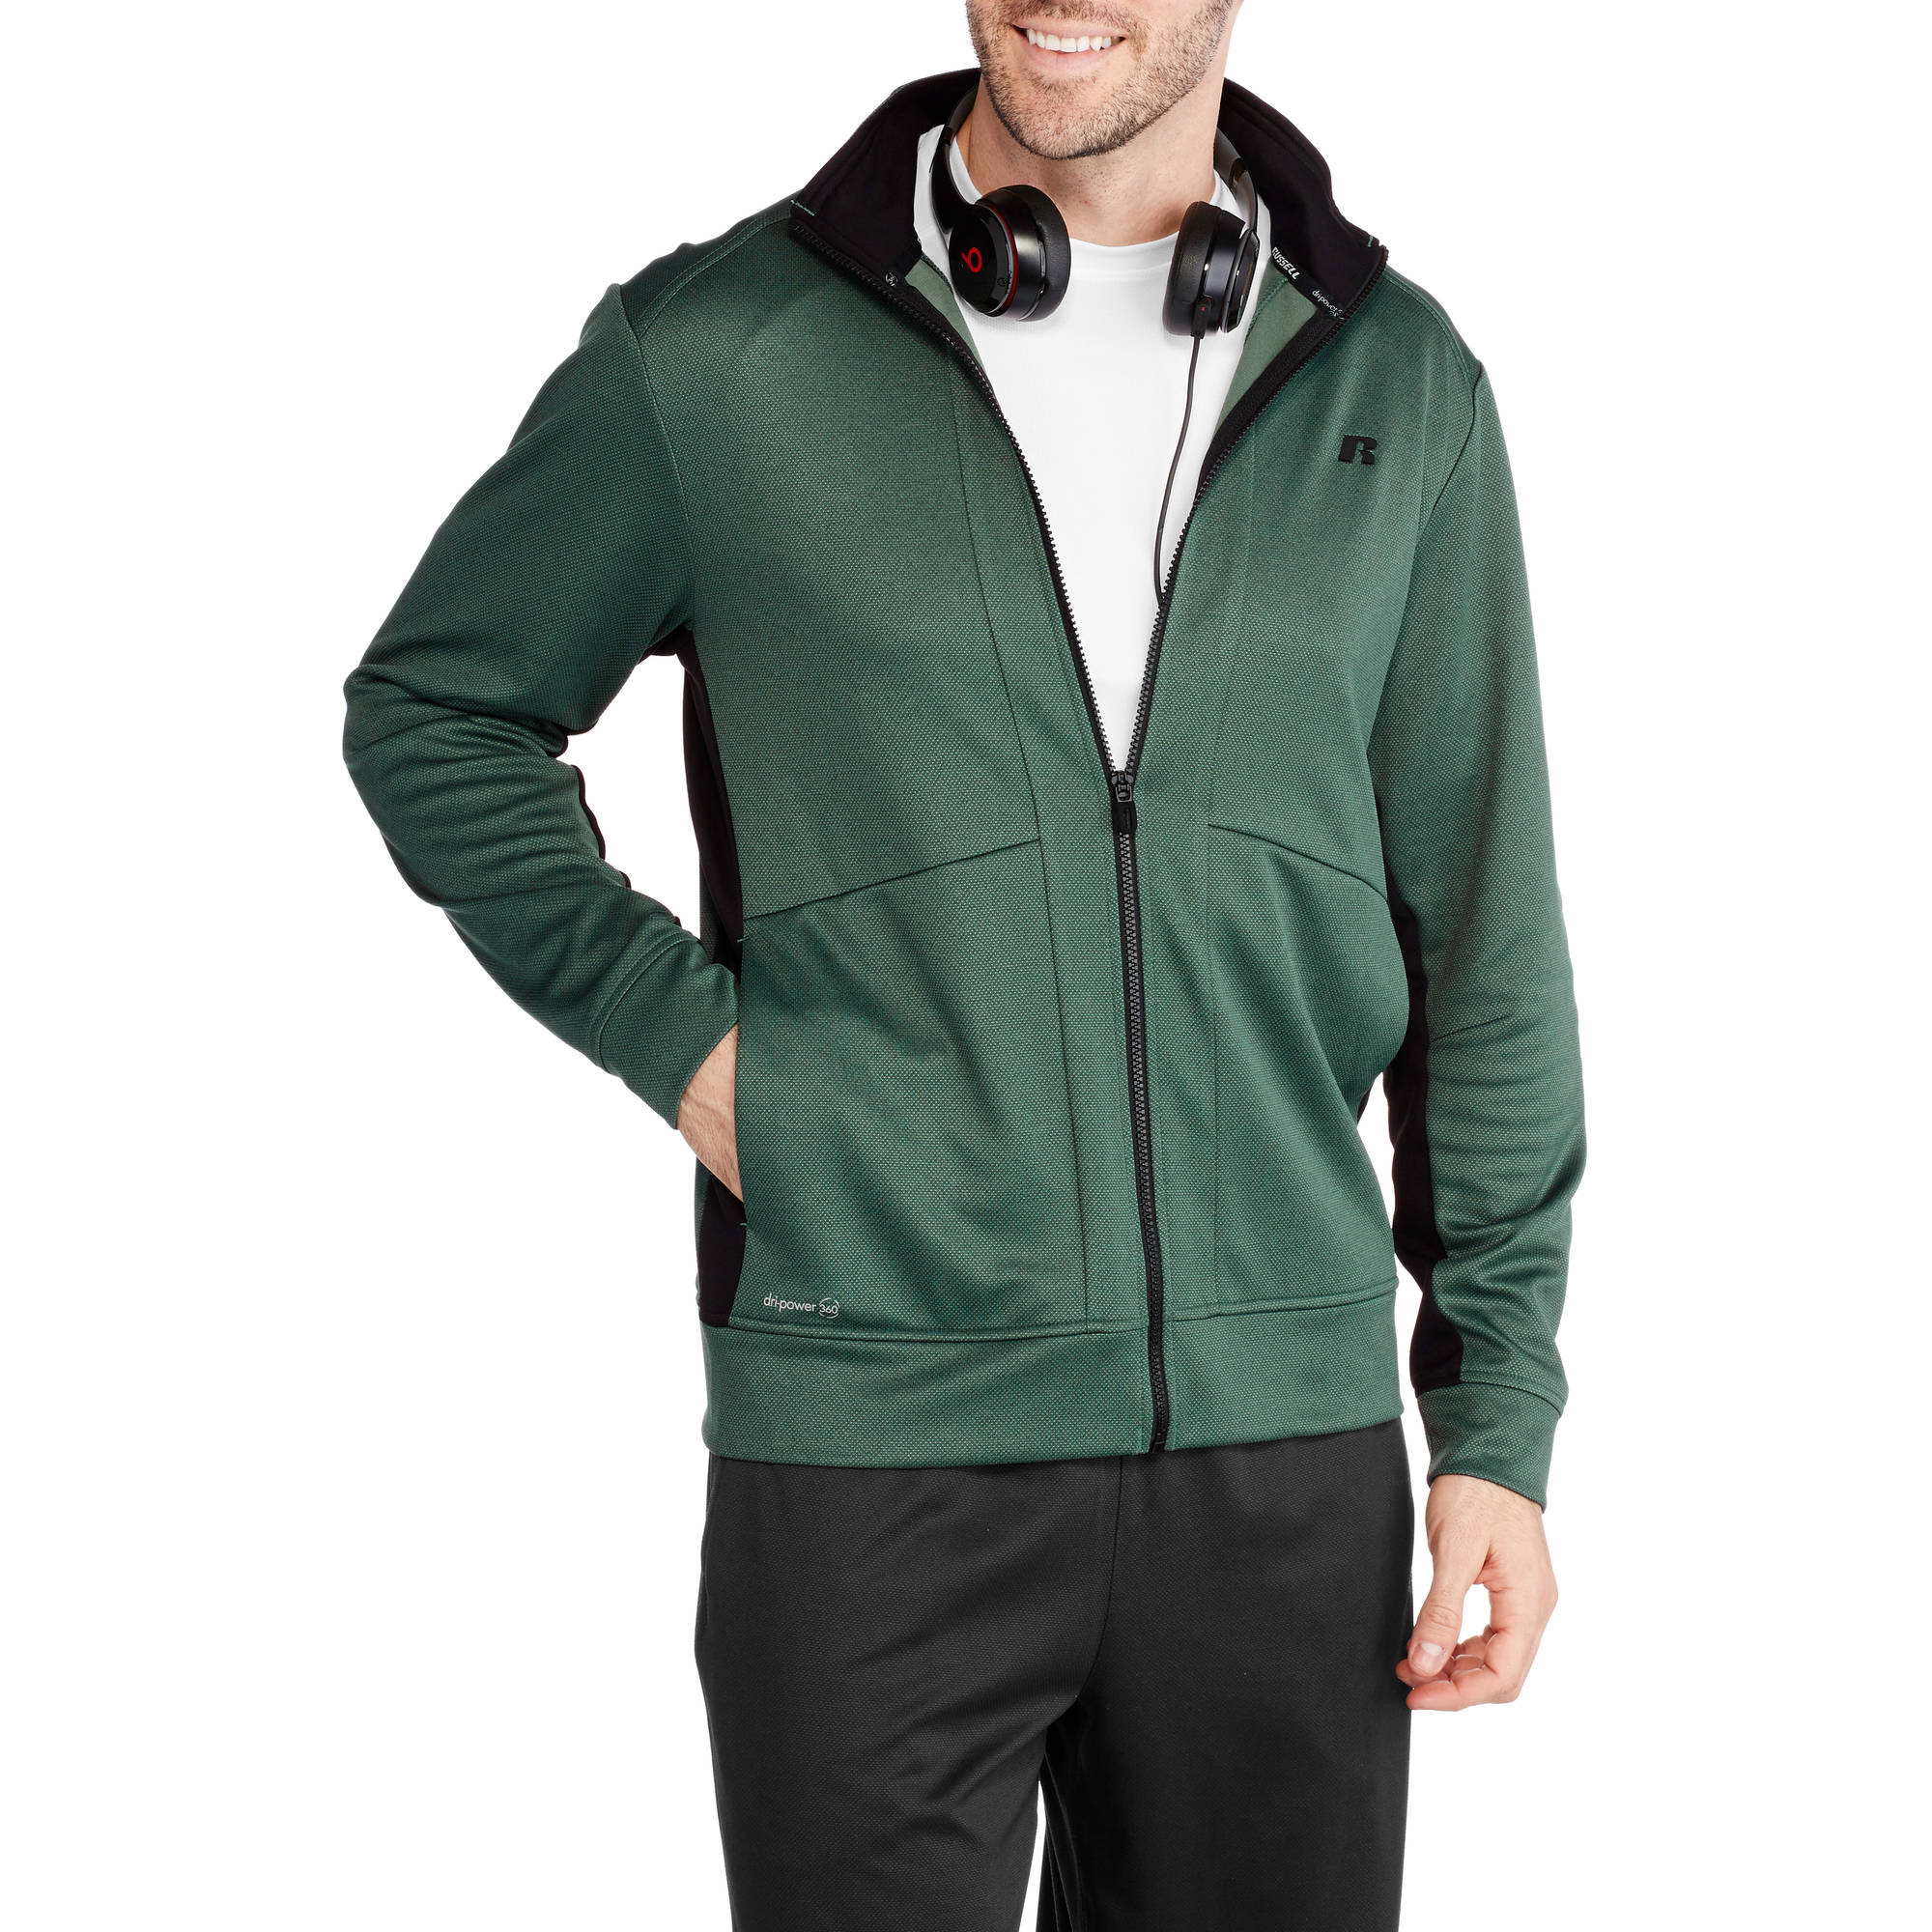 Russell Big Men's Knit Track Performance Jacket